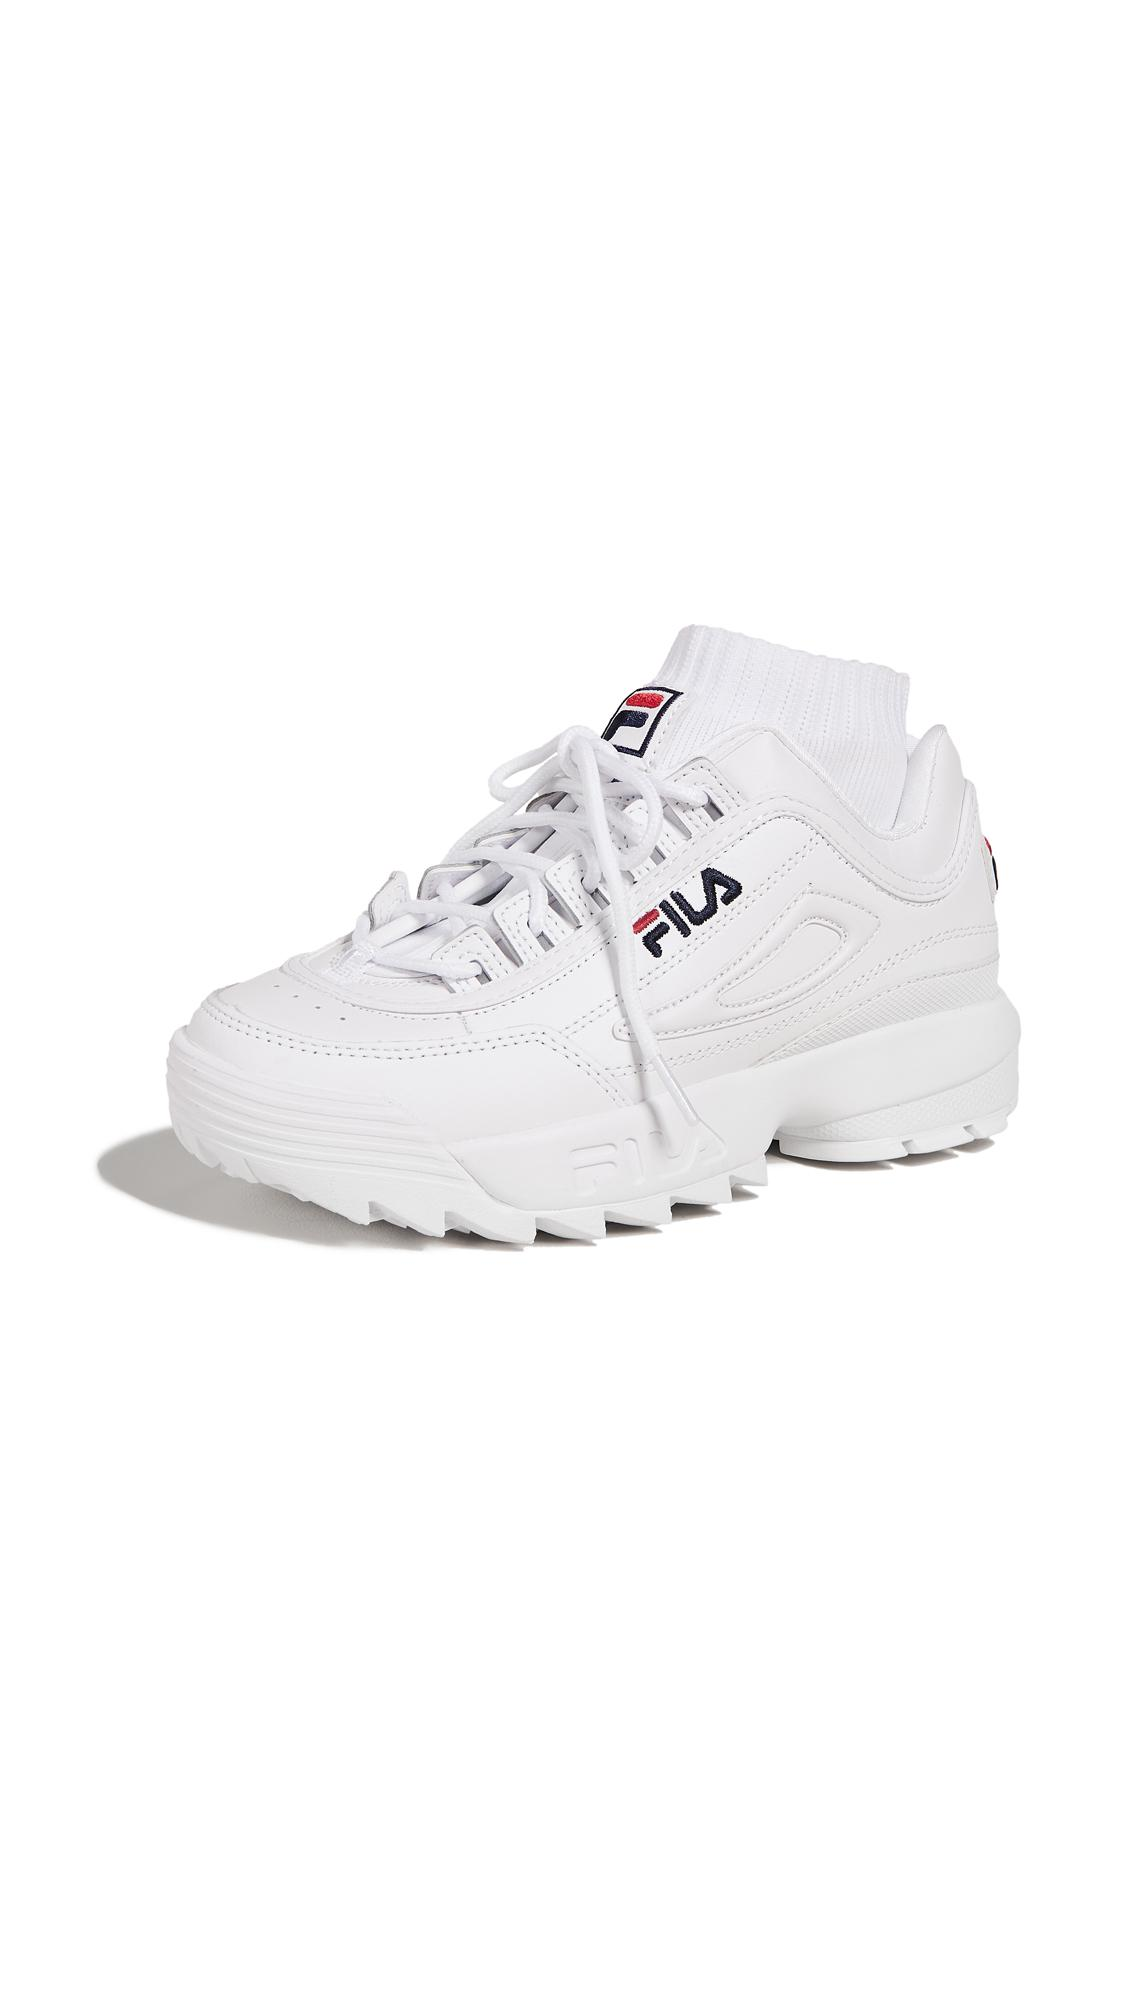 aa71b44e22b6 Fila Women s Disruptor Ii Premium Lace Up Leather Dad Sneakers In White